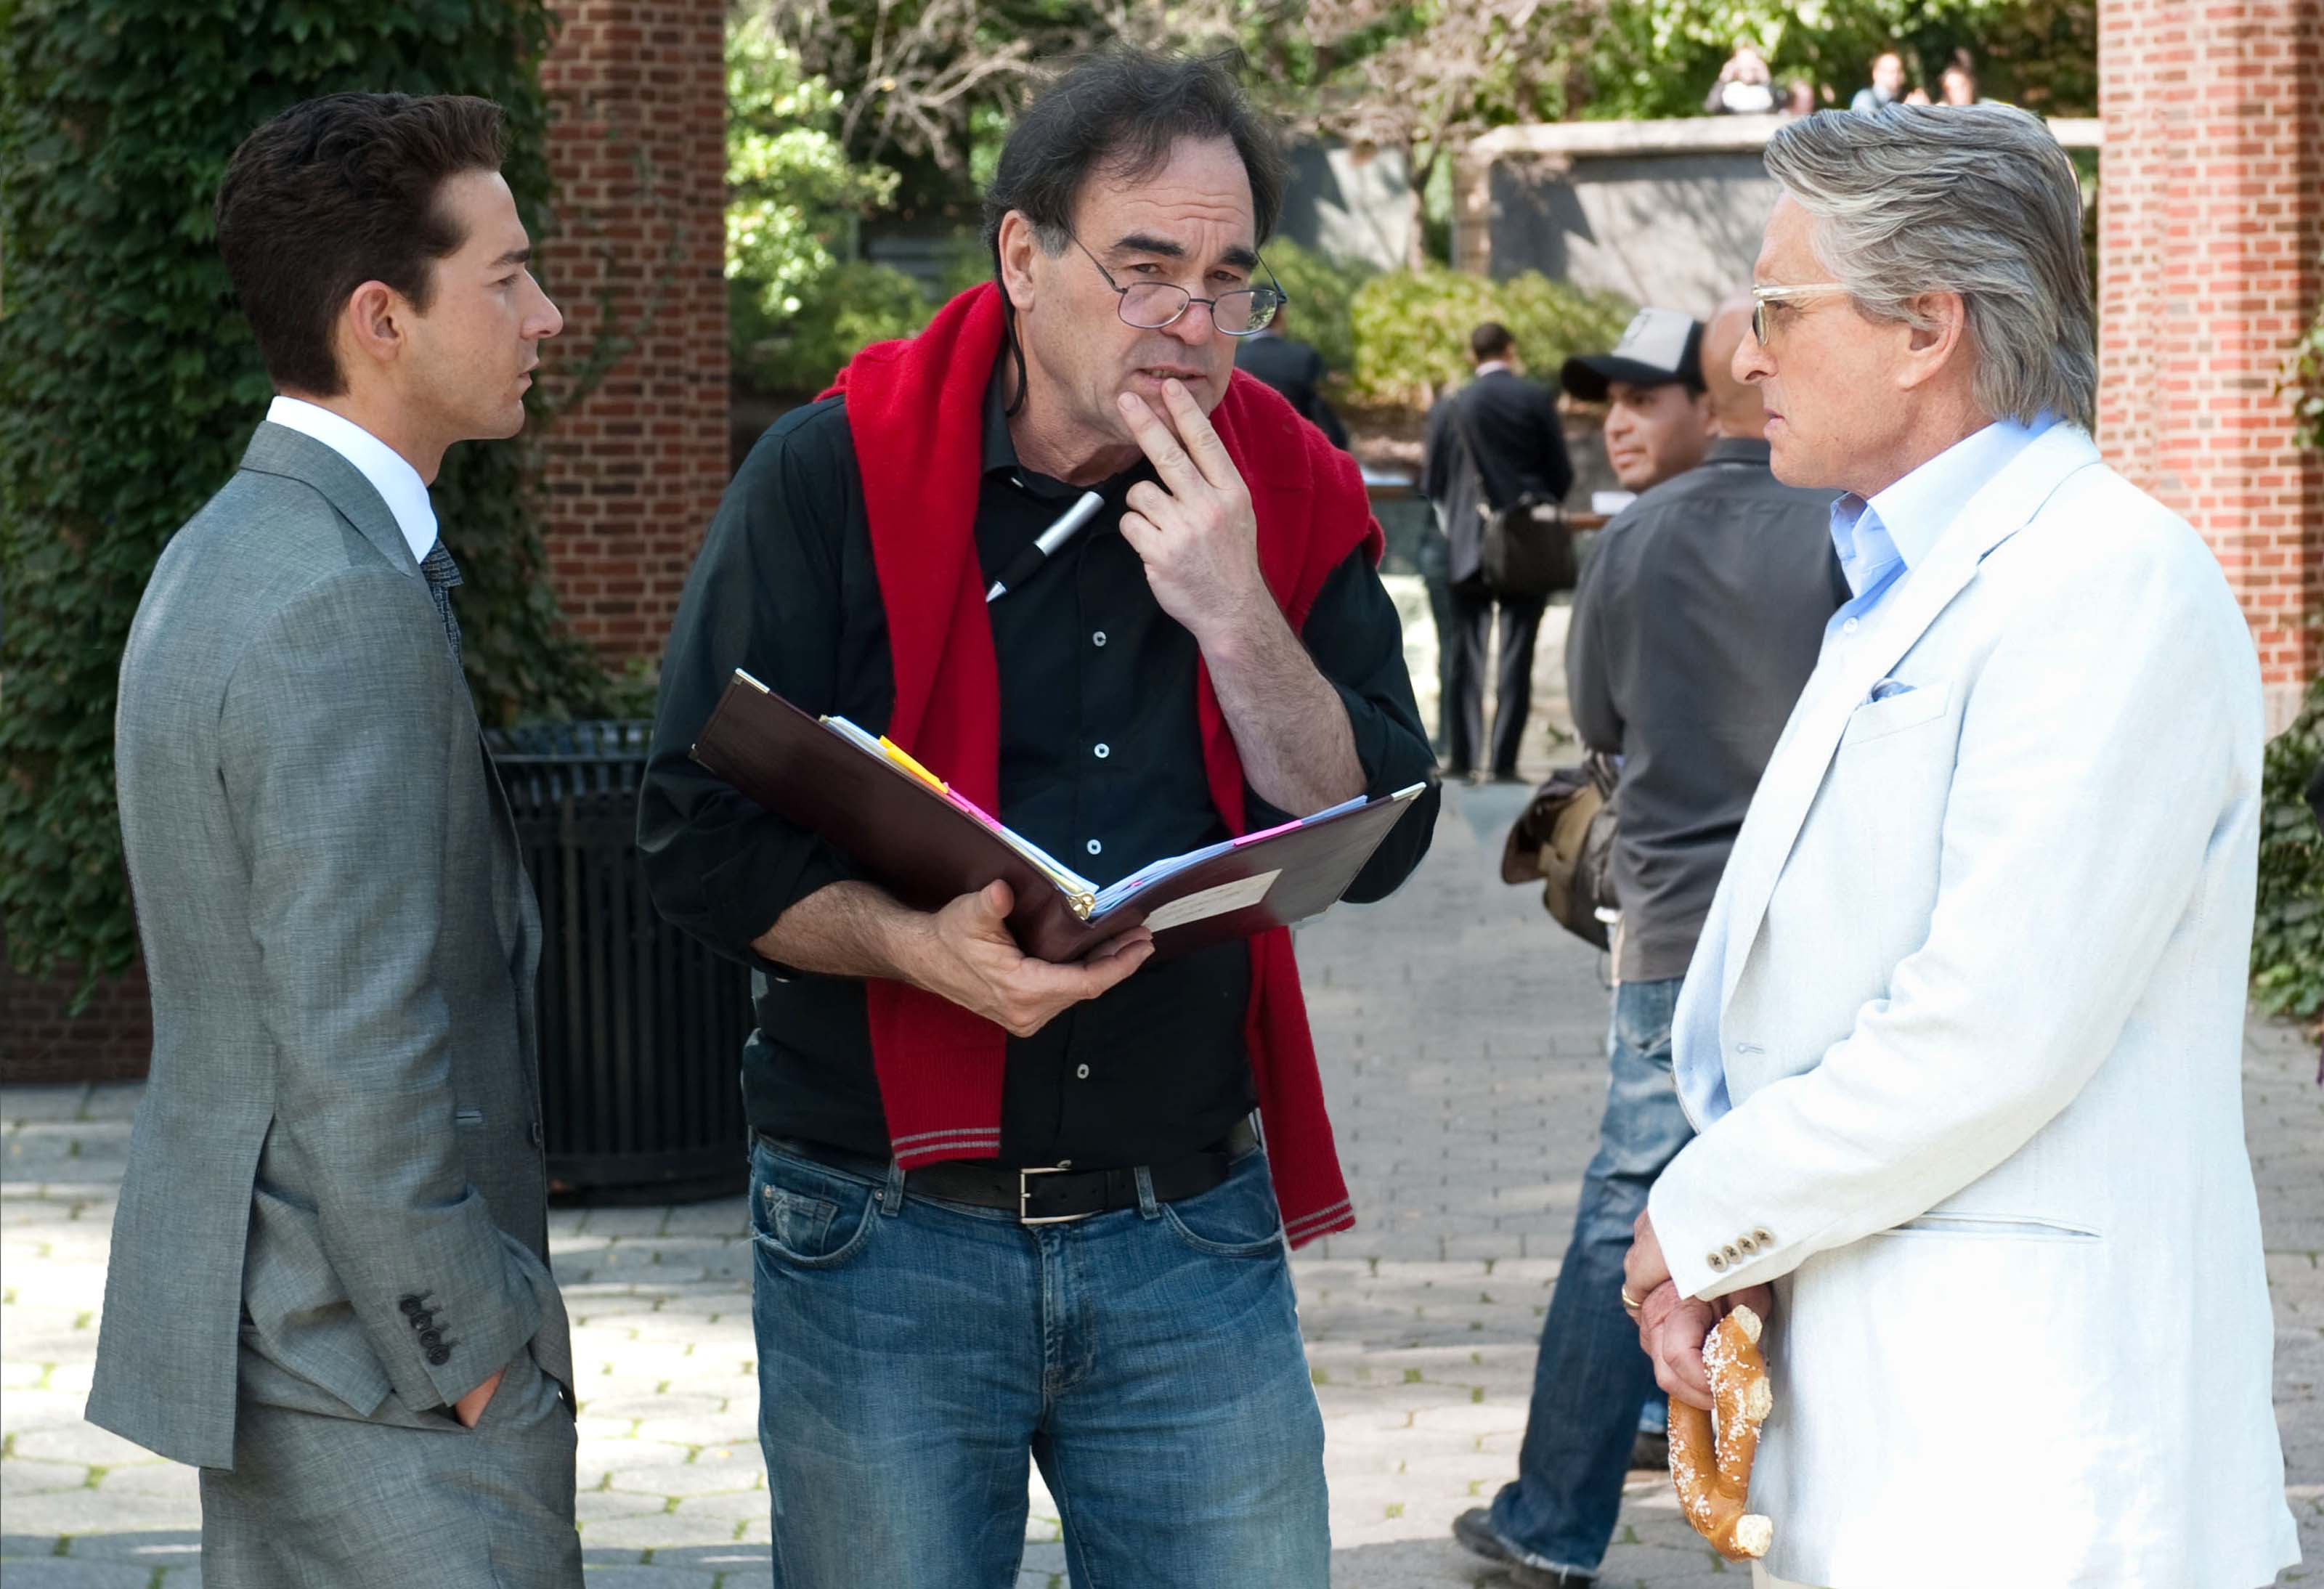 Oliver Stone (middle) would vote for Ron Paul over Obama